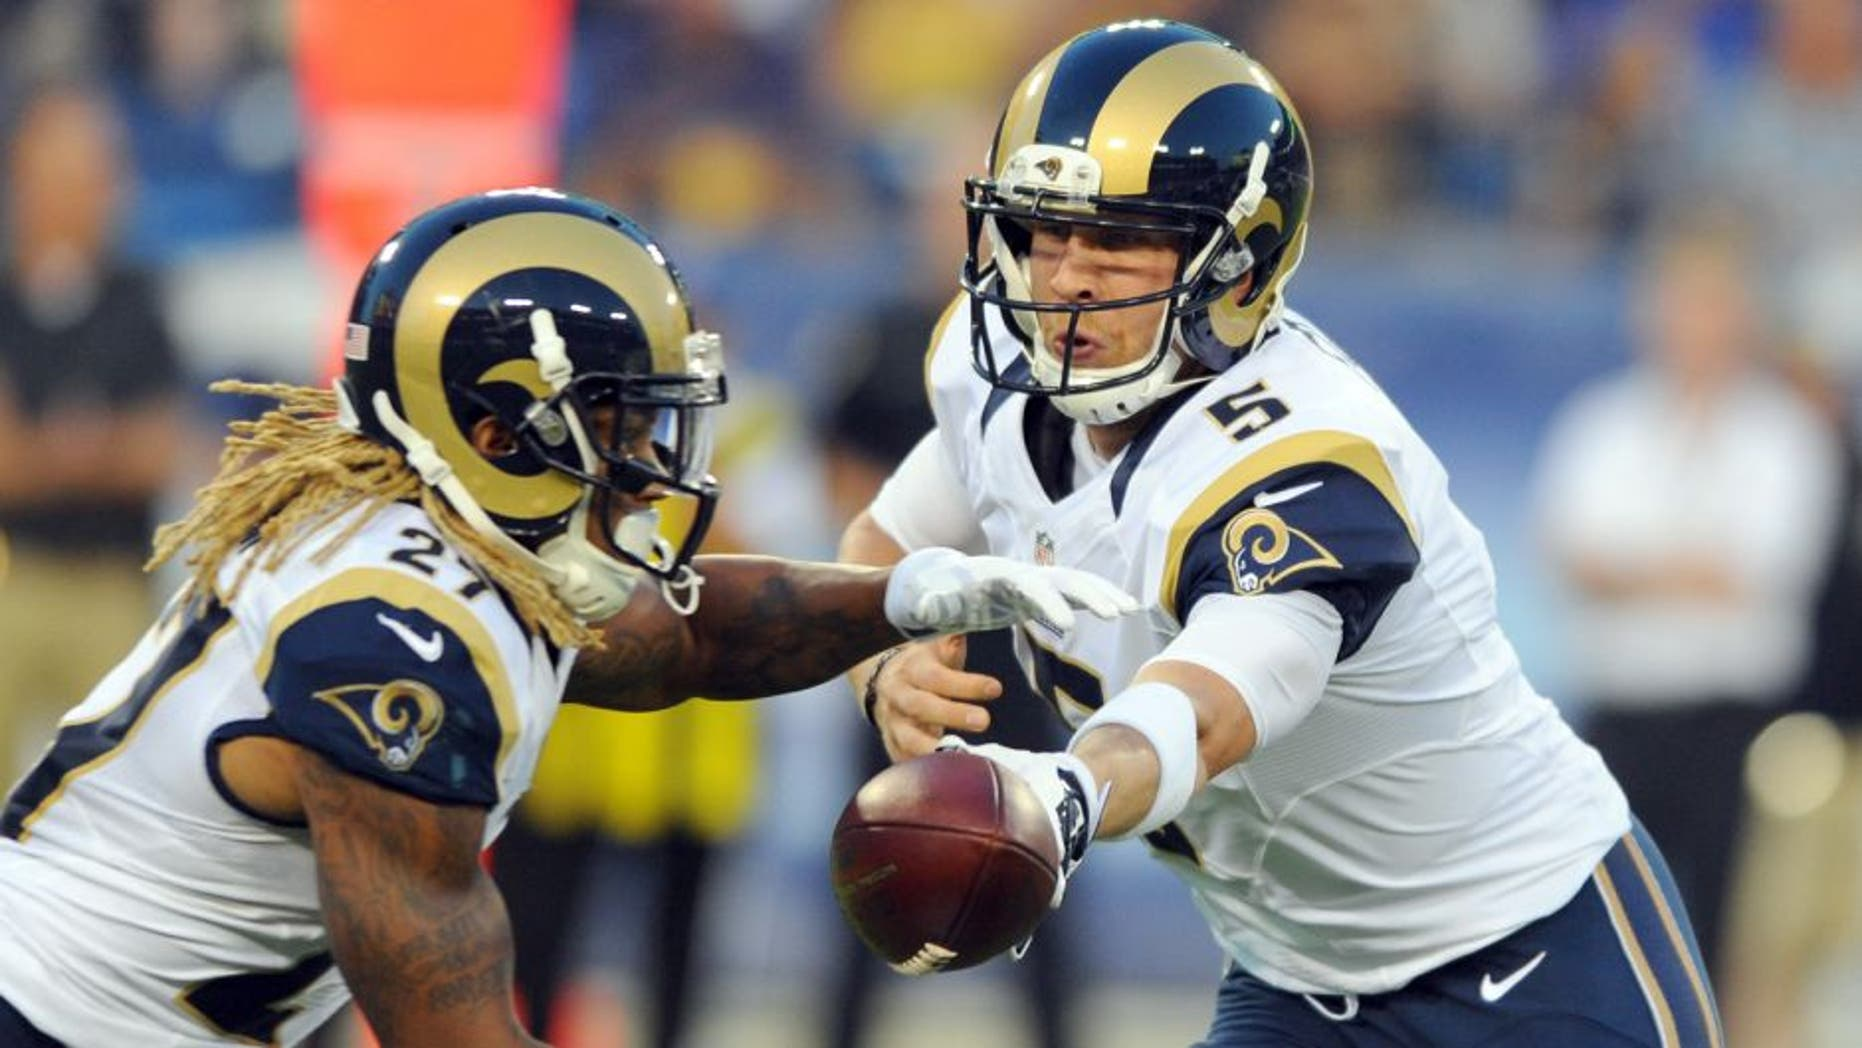 Aug 23, 2015; Nashville, TN, USA; St. Louis Rams quarterback Nick Foles (5) hands the ball off to running back Tre Mason (27) during the first half against the Tennessee Titans at Nissan Stadium. Mandatory Credit: Christopher Hanewinckel-USA TODAY Sports